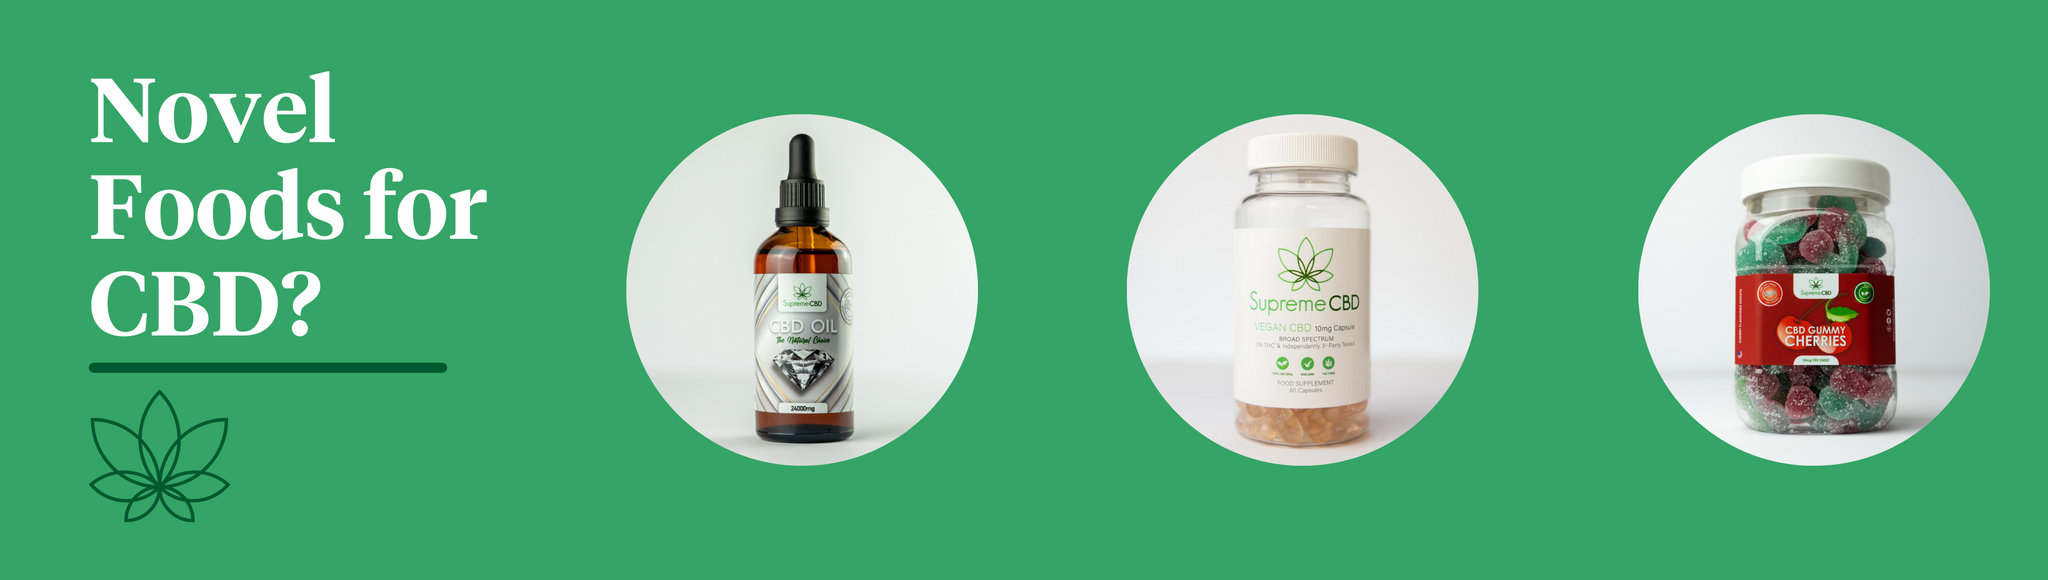 A green background with CBD oil, capsules and gummy cherries to indicate what Novel Foods means for CBD.